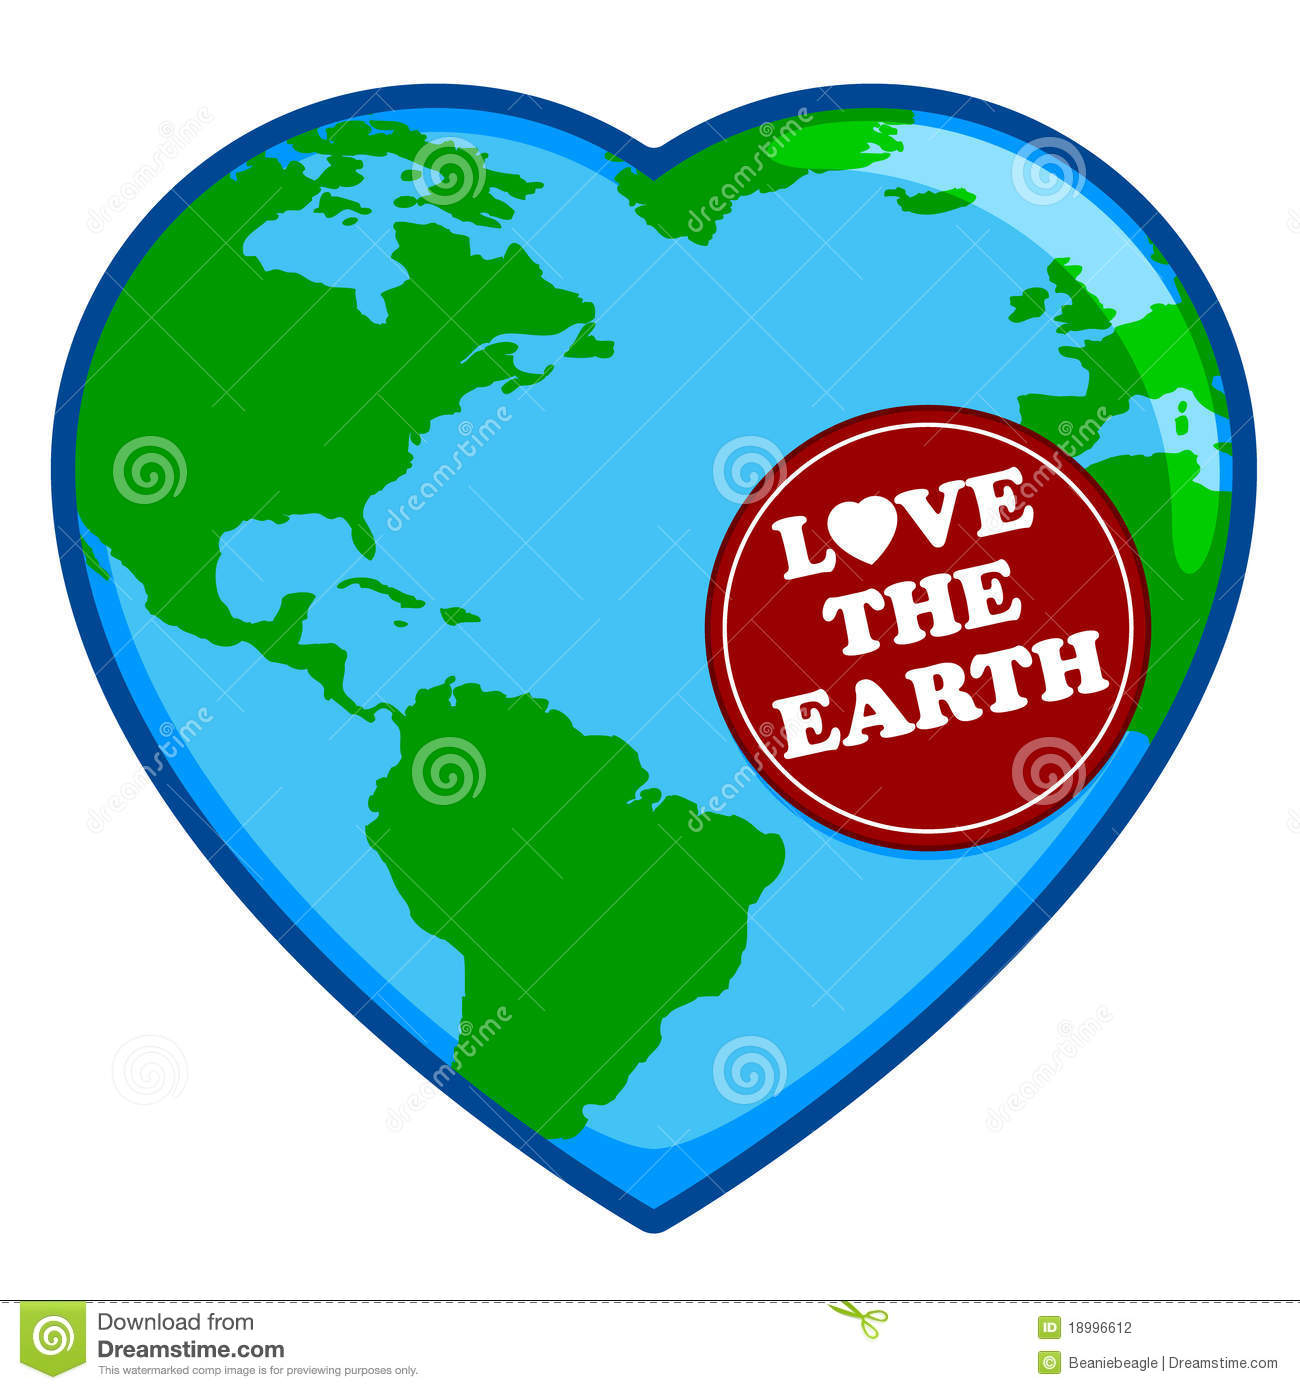 Heart Shaped Earth | Clipart Panda - Free Clipart Images